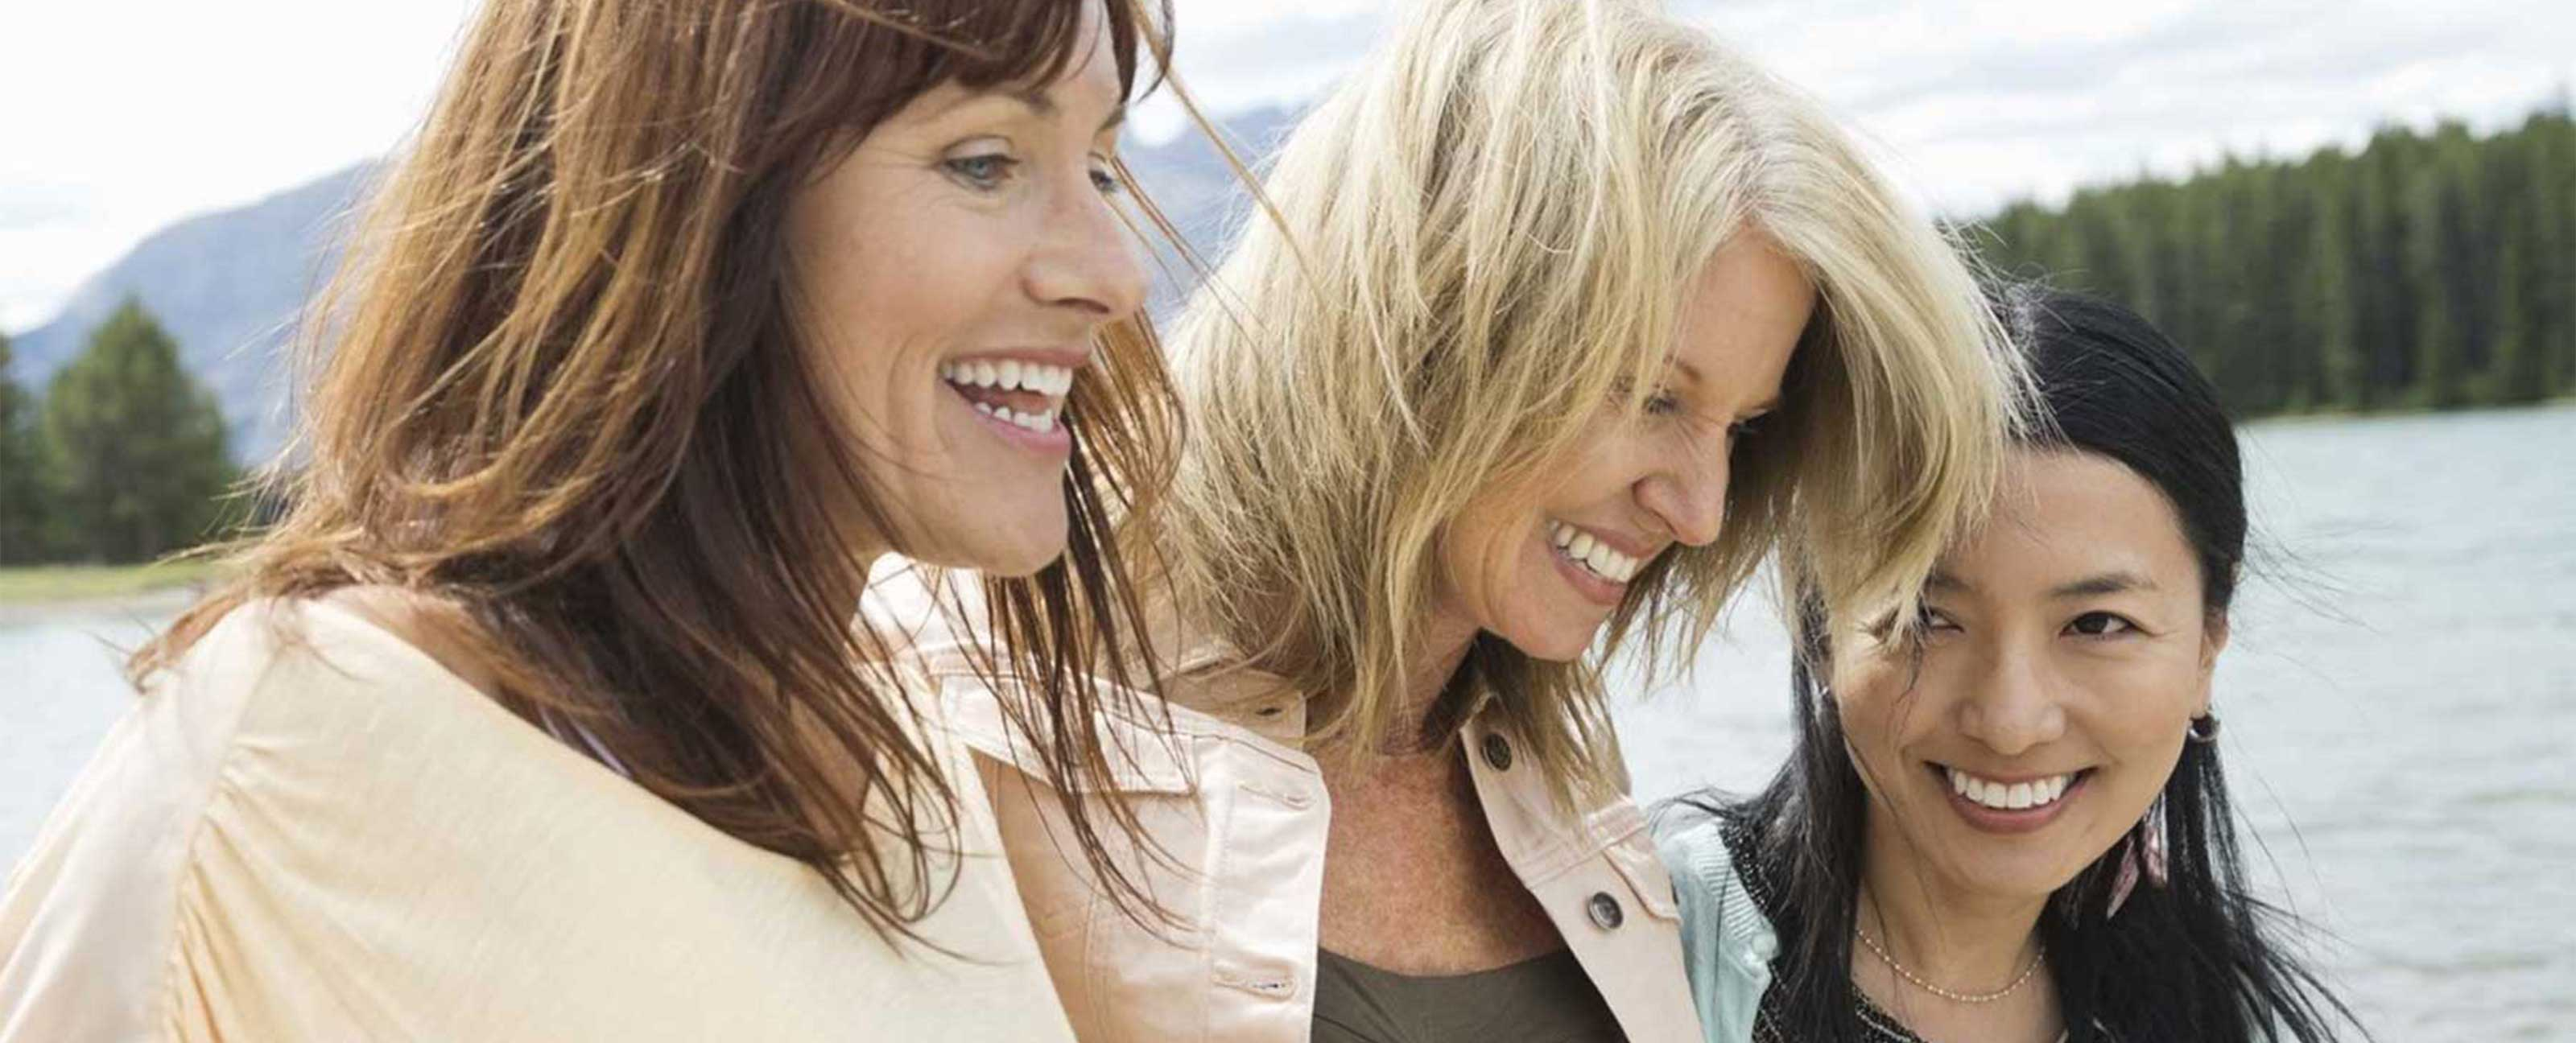 three women laughing by lake legacy image